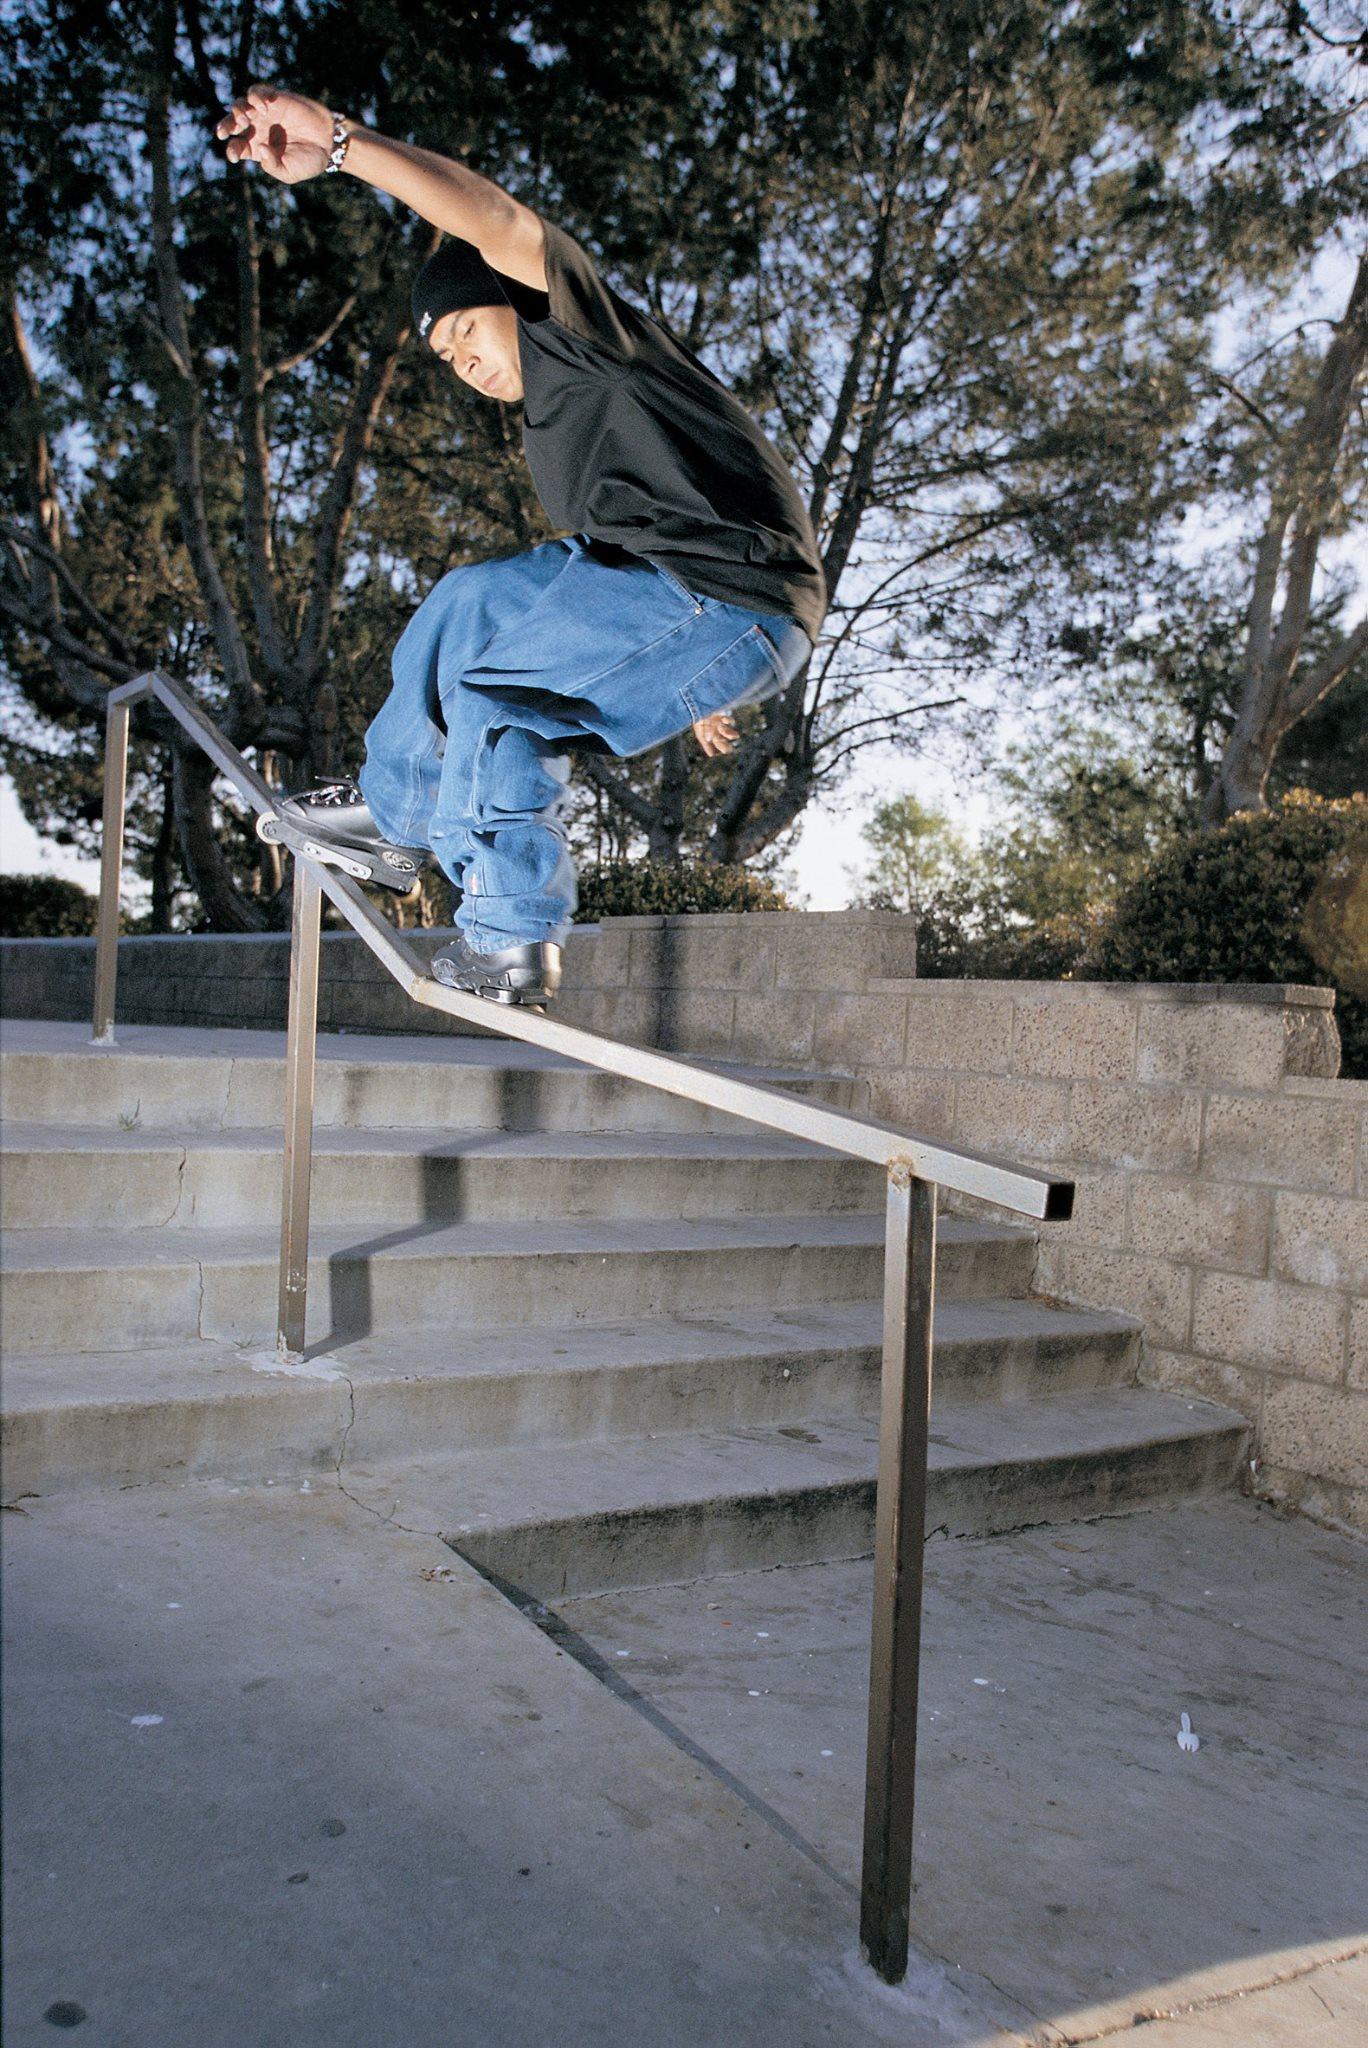 This shot of Jon Julio was taken a few months after the original 50/50 frame ad and features a black juice system with his pro model grindplate. This was very close to what his USD Throne ended up as.